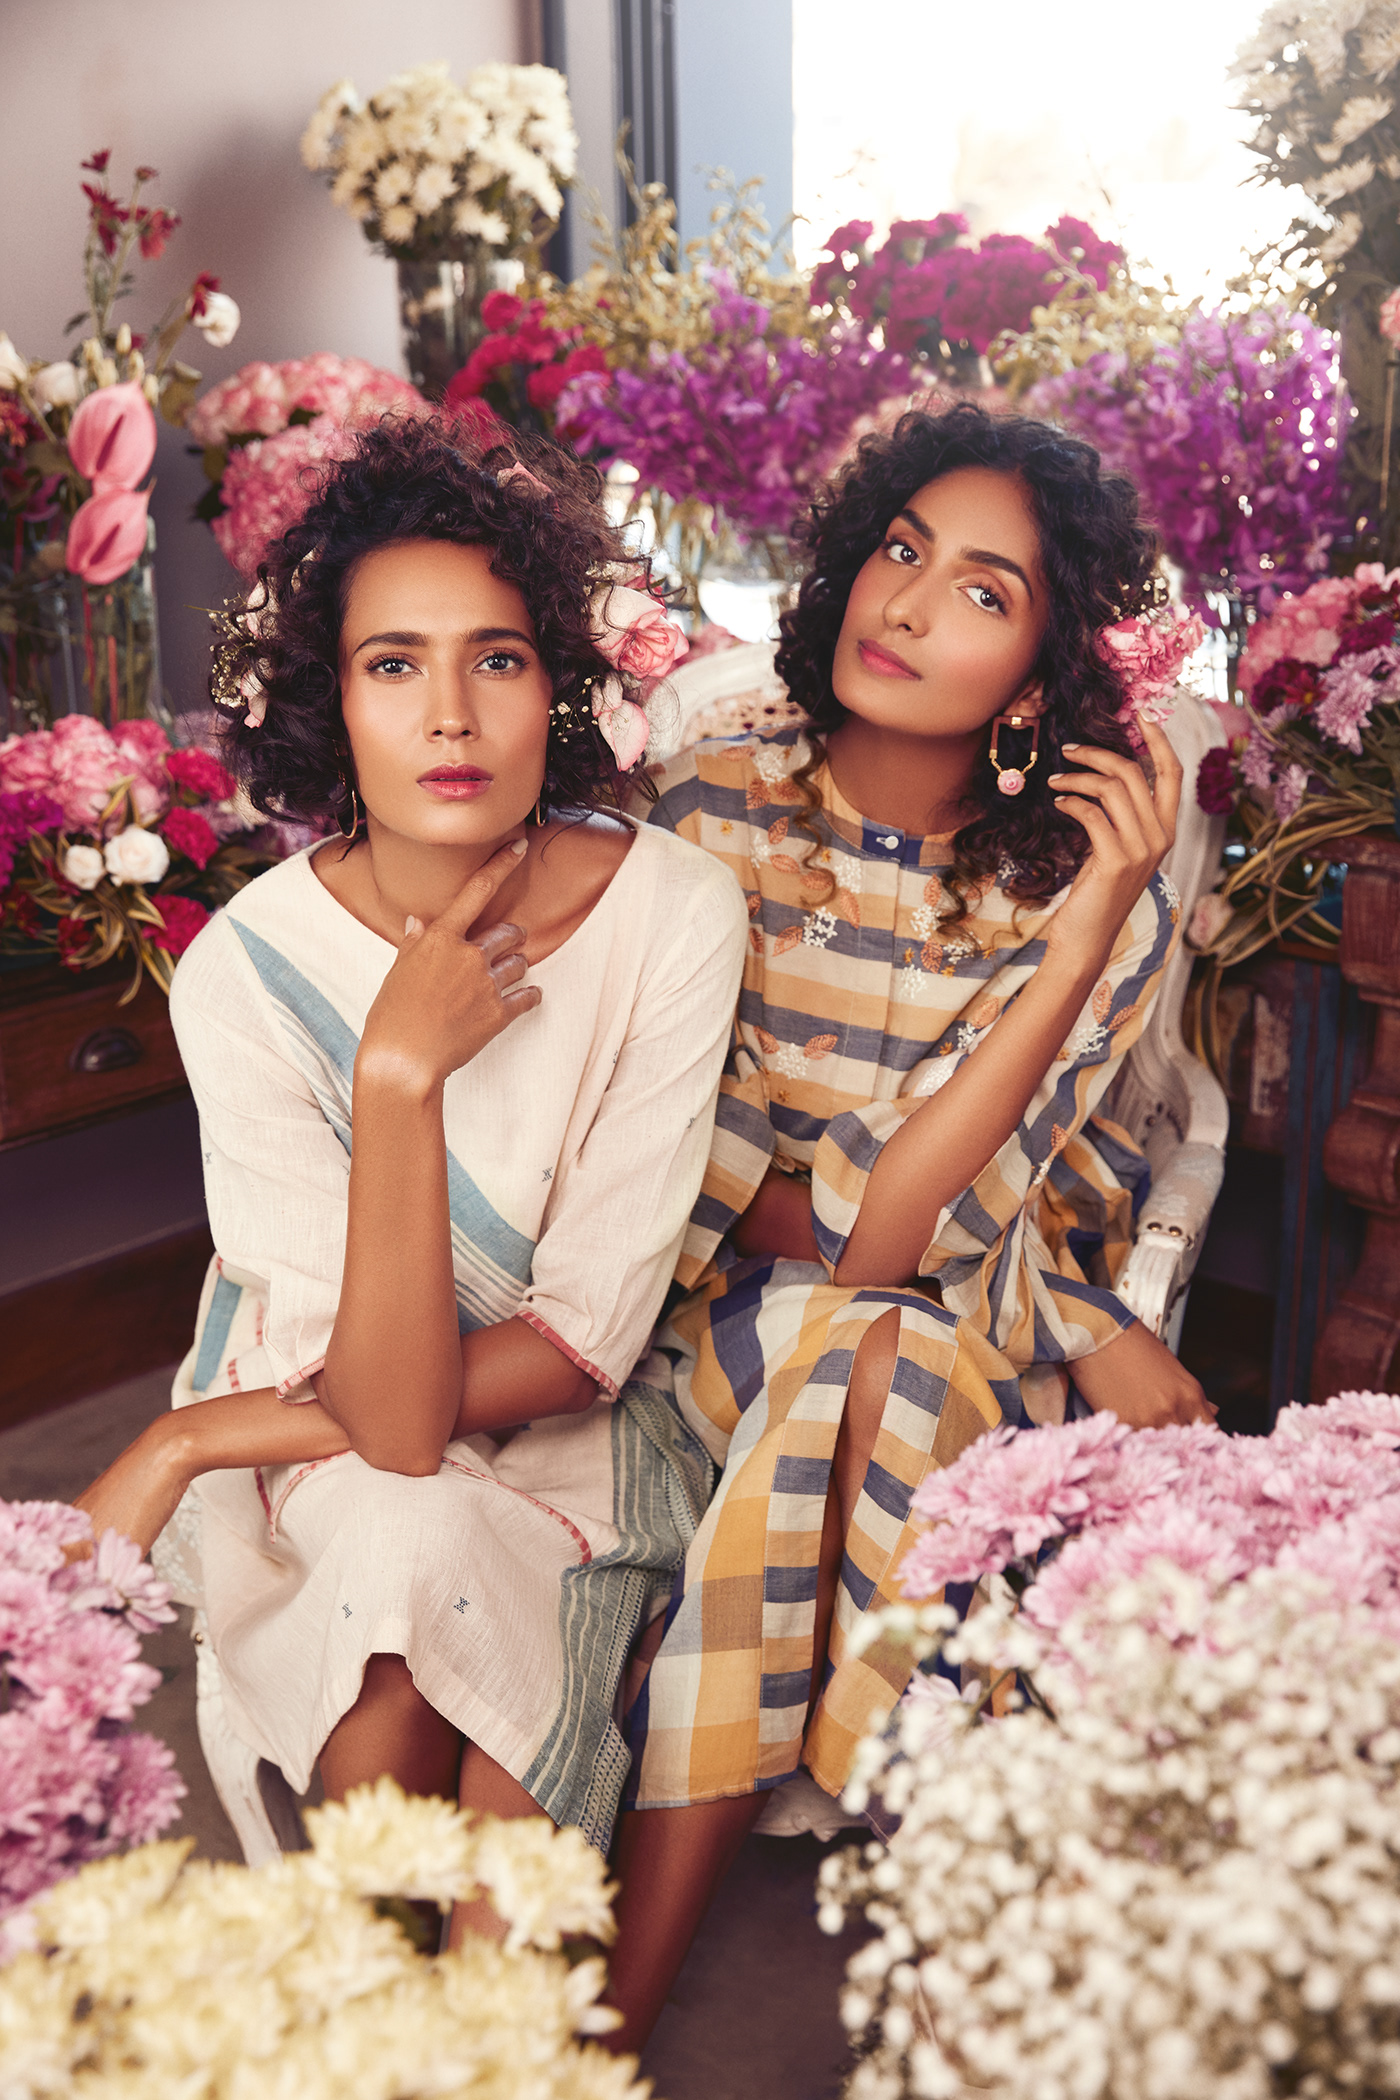 Campaign for Pernia's Pop-up Show Spring /Summer 19 / фото Shirin Salwan